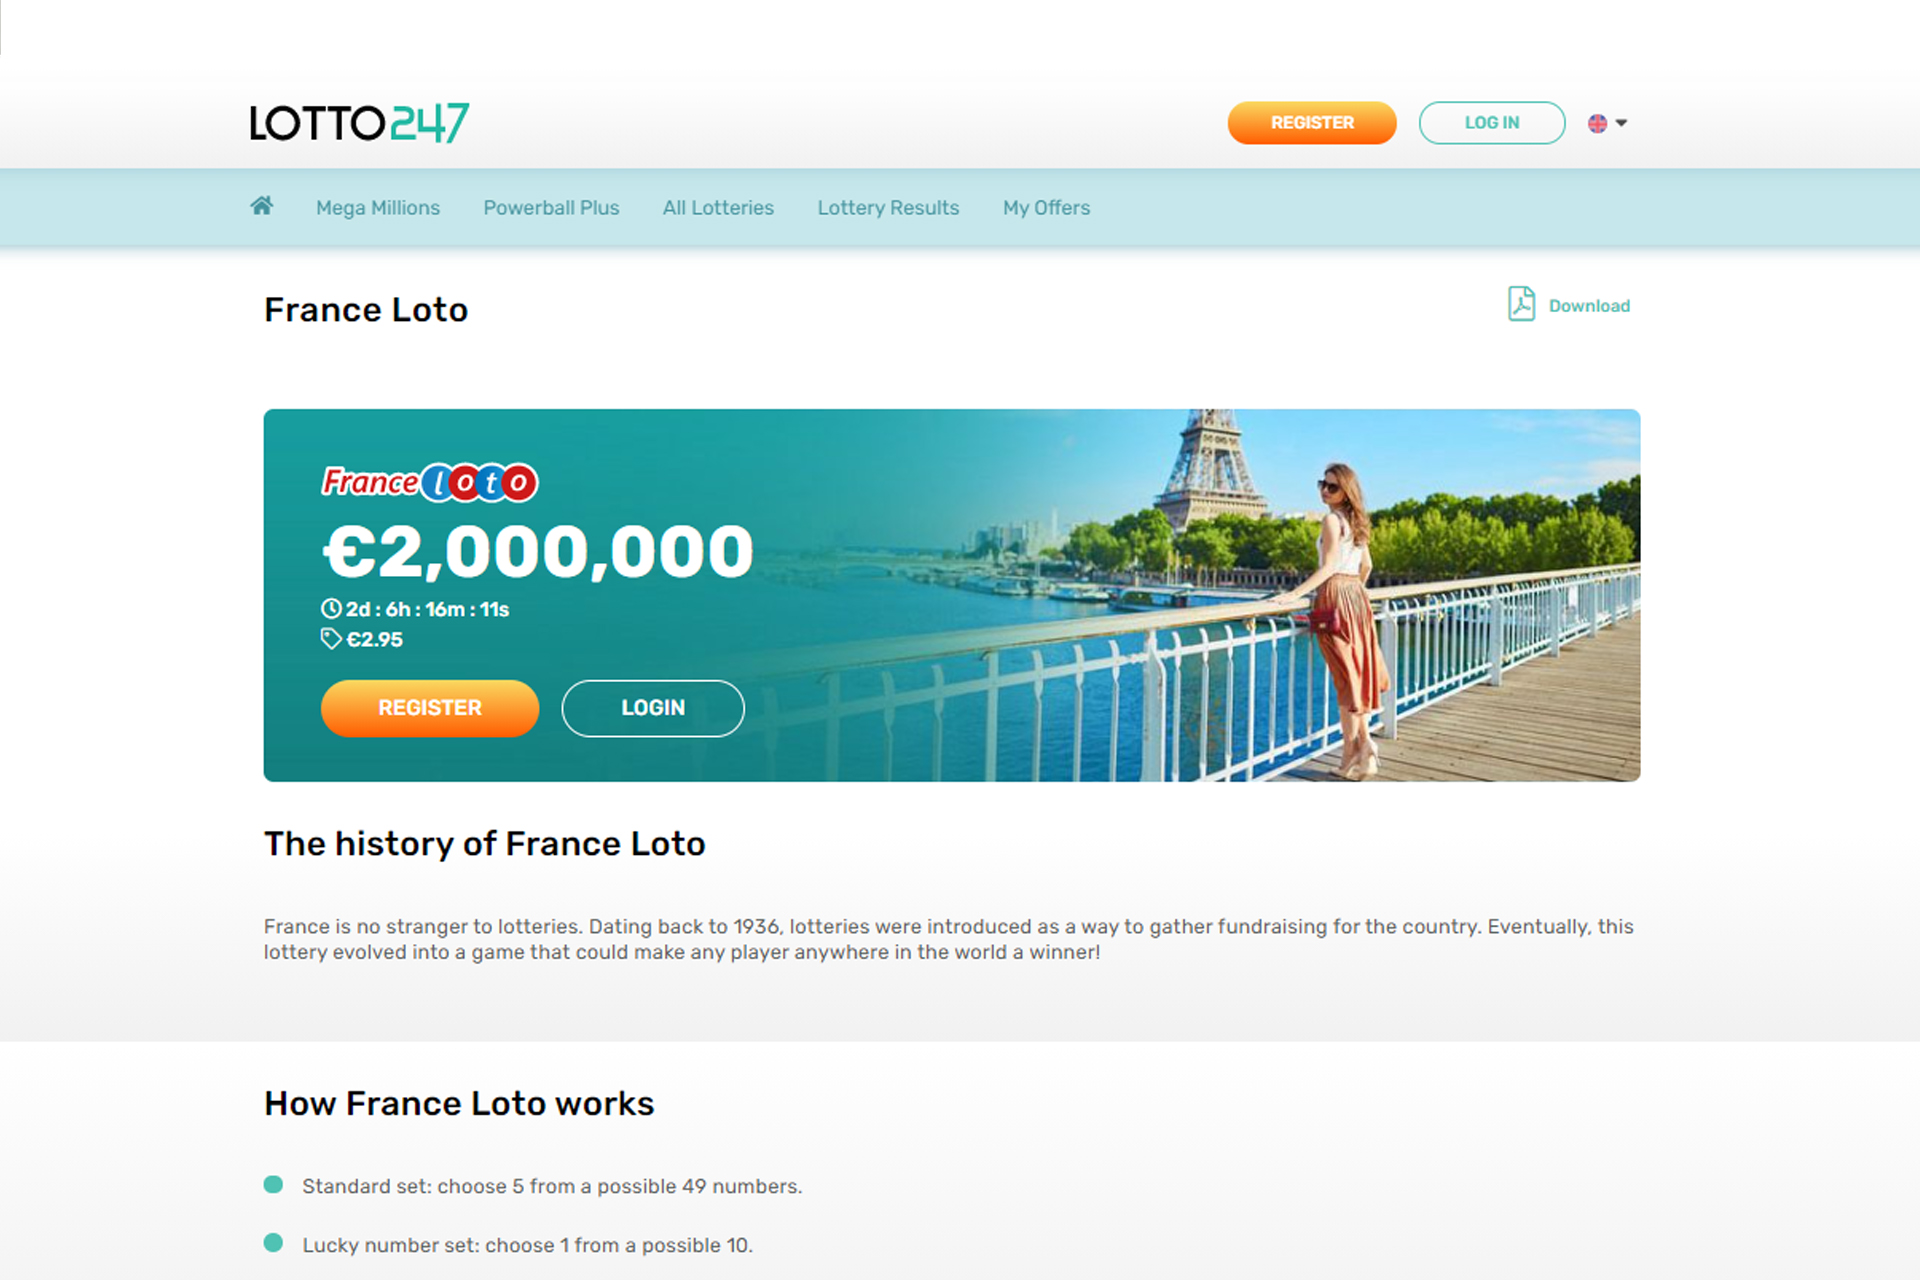 Check your luck in playing France Loto.